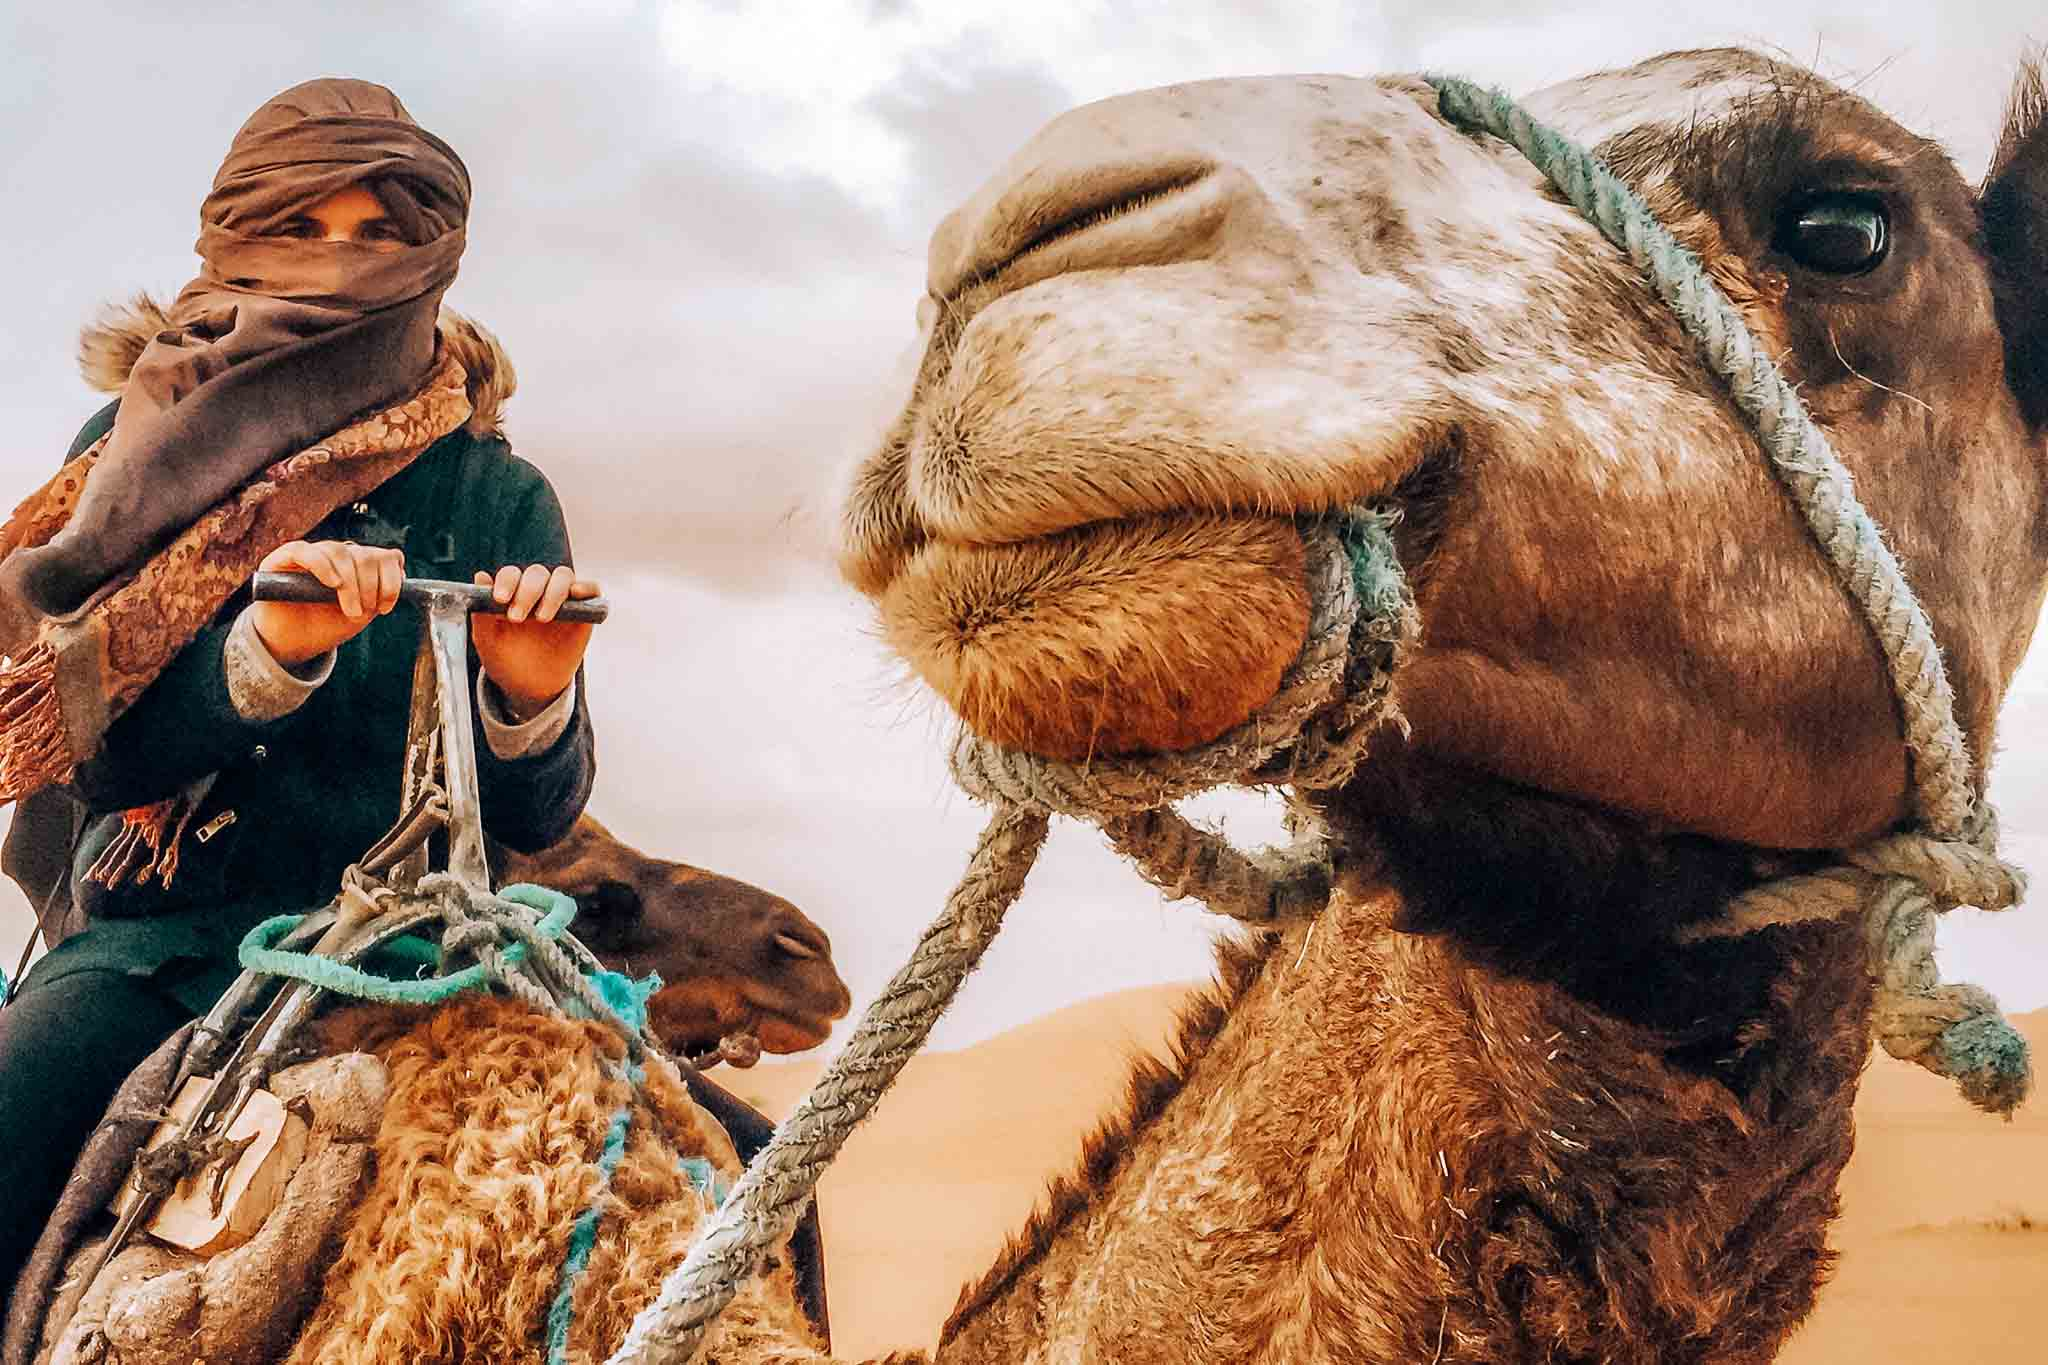 Hannah sitting on a camel in the Sahara Desert in Morocco